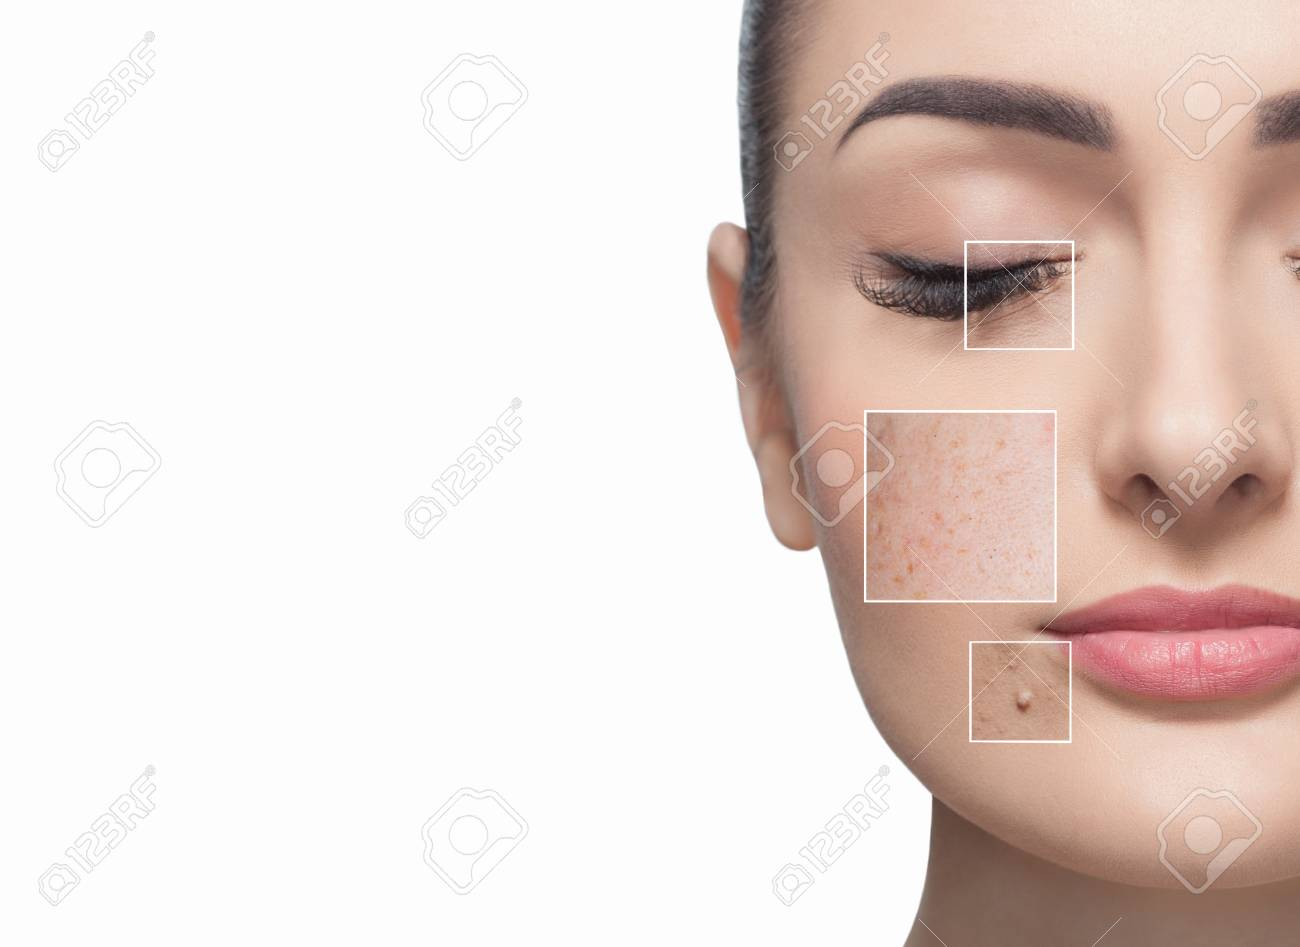 Portrait of a beautiful woman on a white background, on the face are visible areas of problem skin - wrinkles and freckles. Cosmetology concept. - 120388510